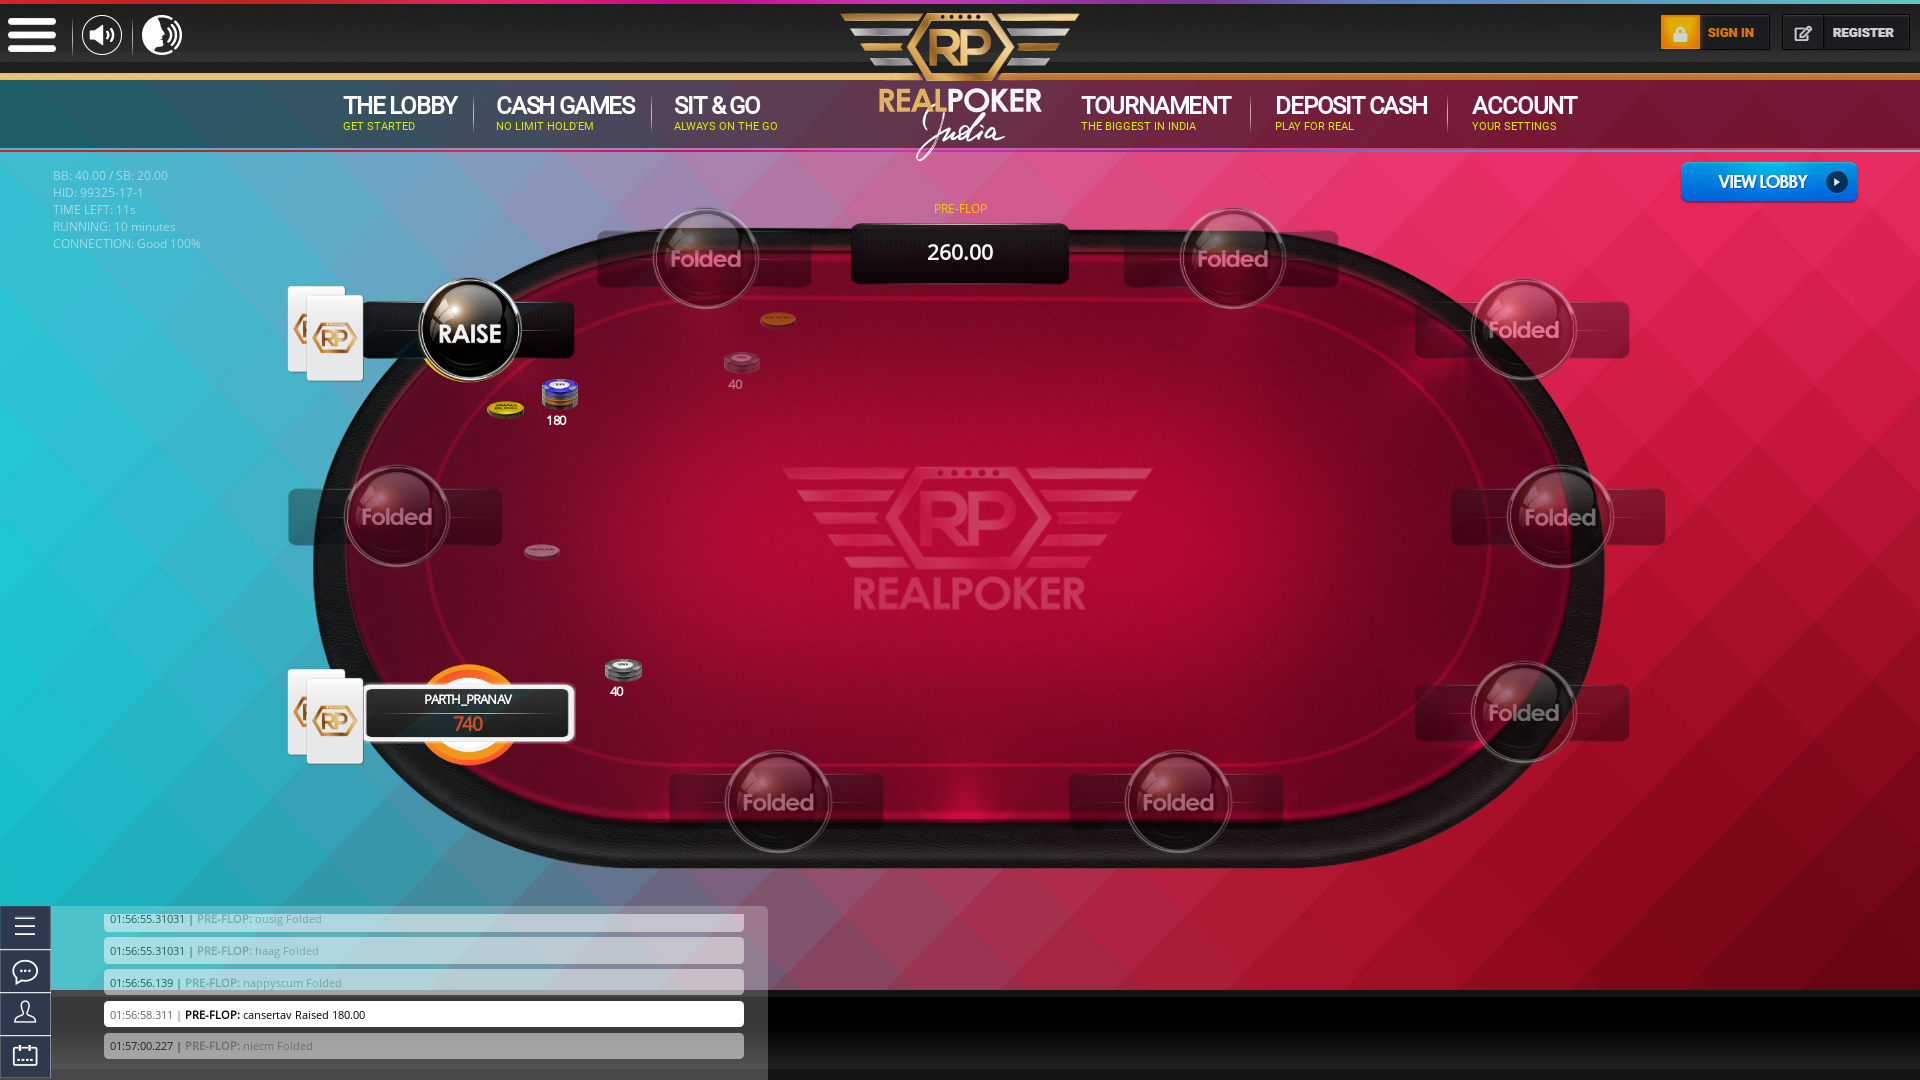 Thiruvanthapuram Online Poker from July